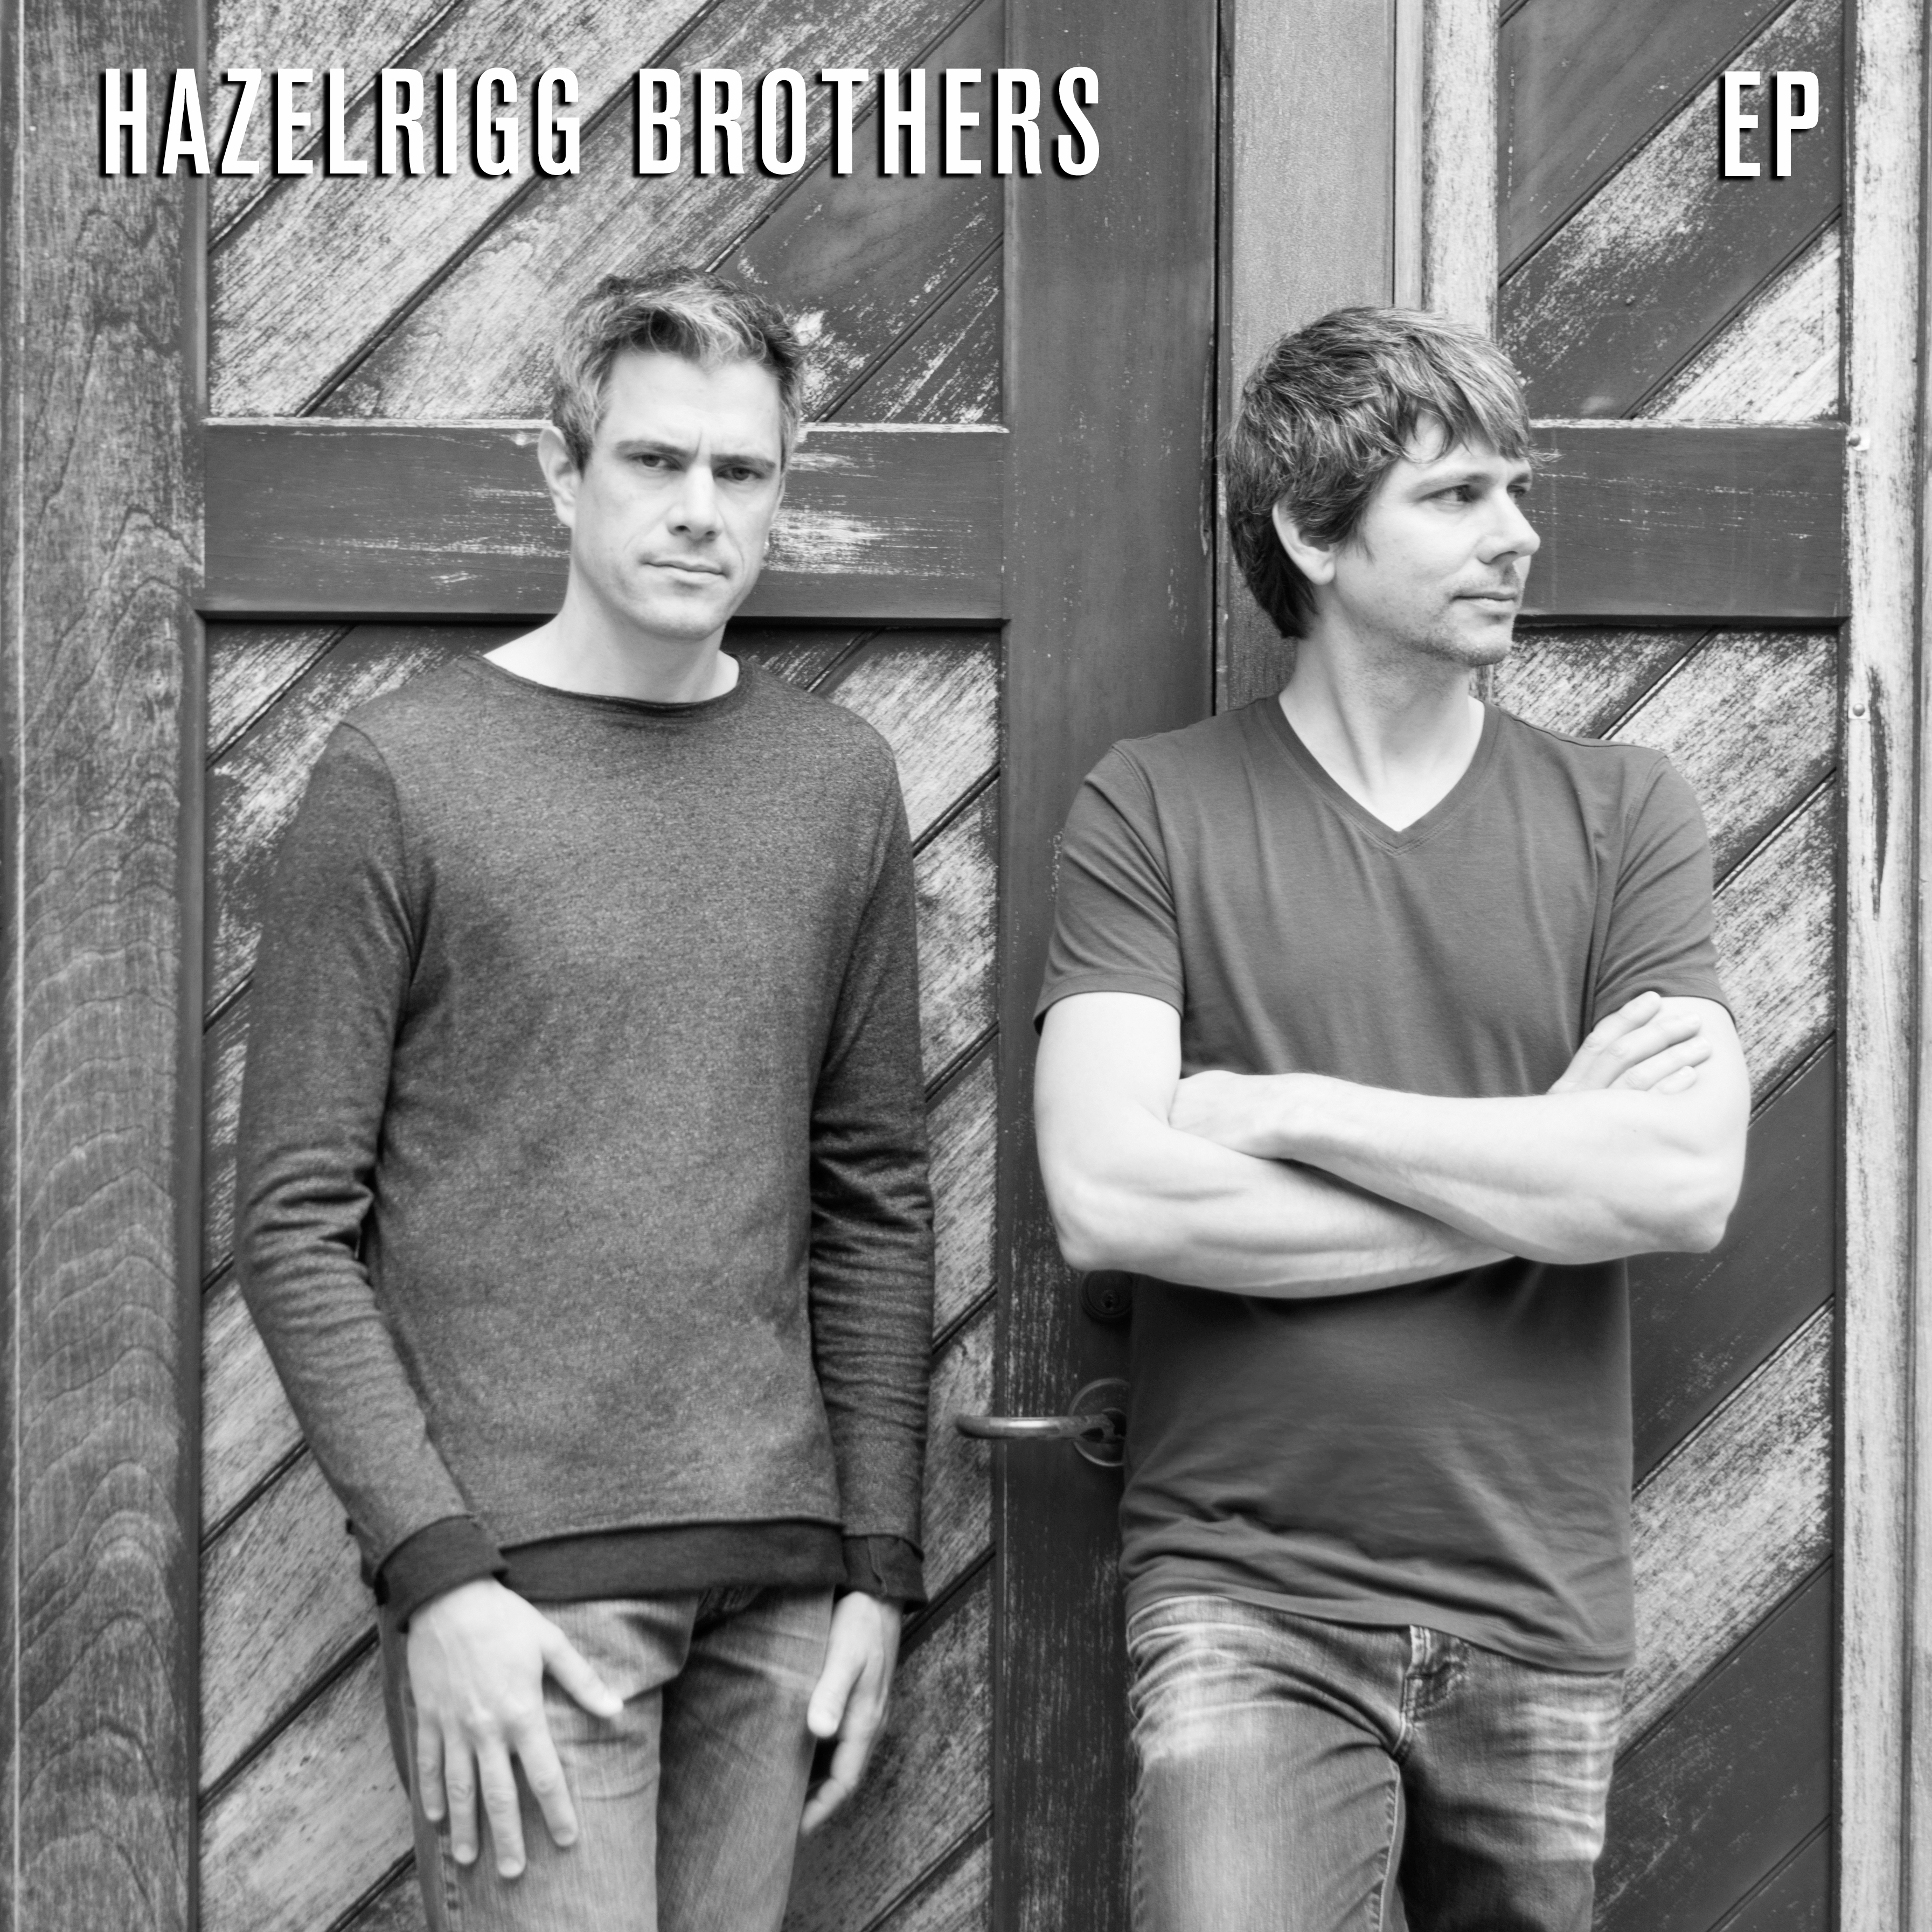 Hazelrigg Brothers - EP - Cover Image